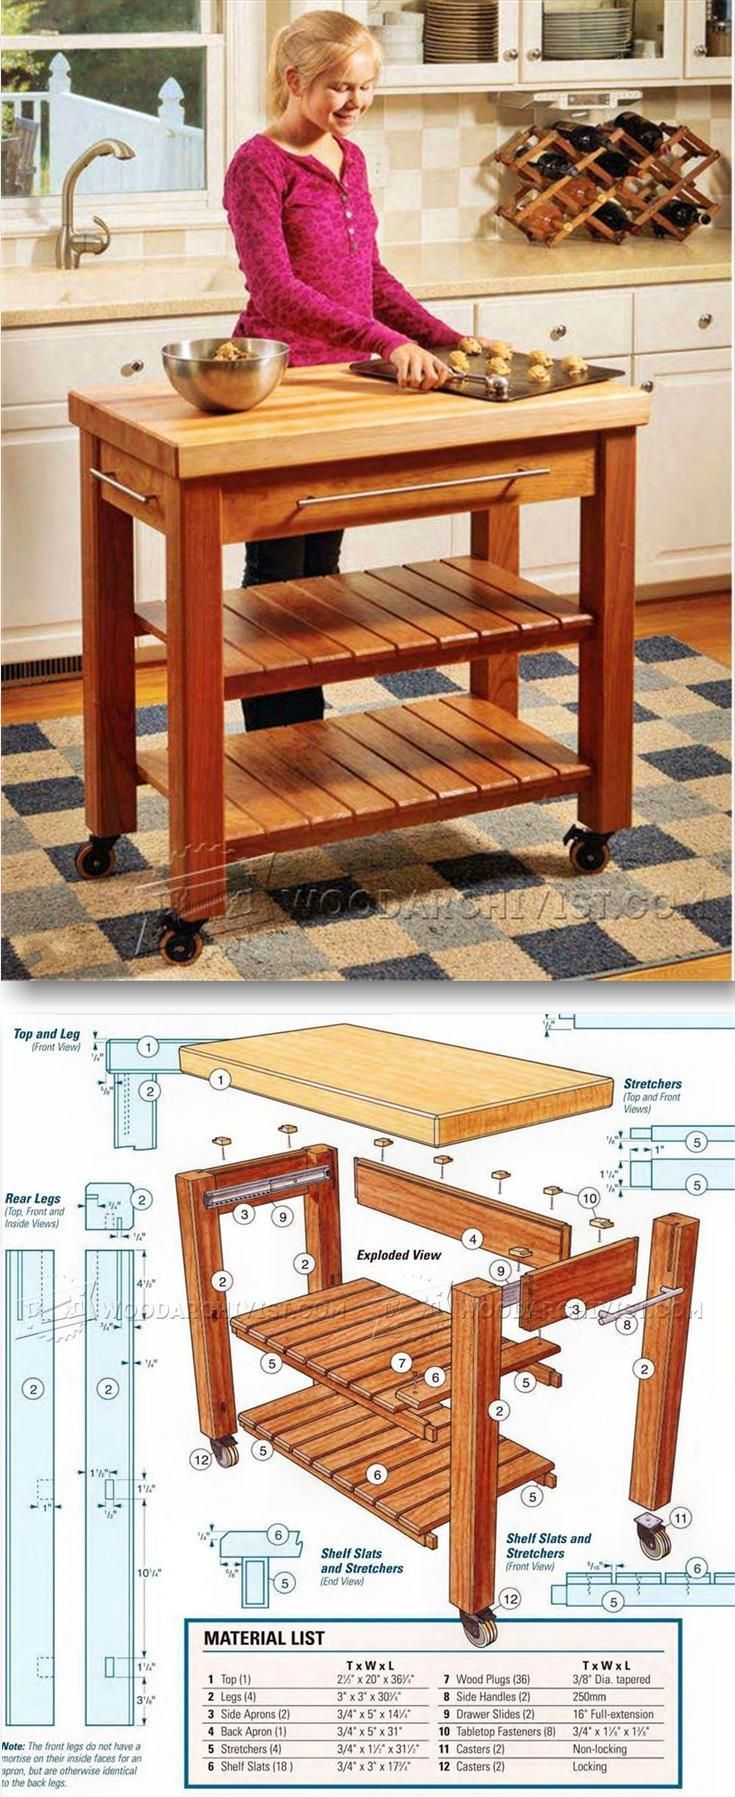 Portable Kitchen Island Plans – Furniture Plans and Projects | WoodArchivist.com